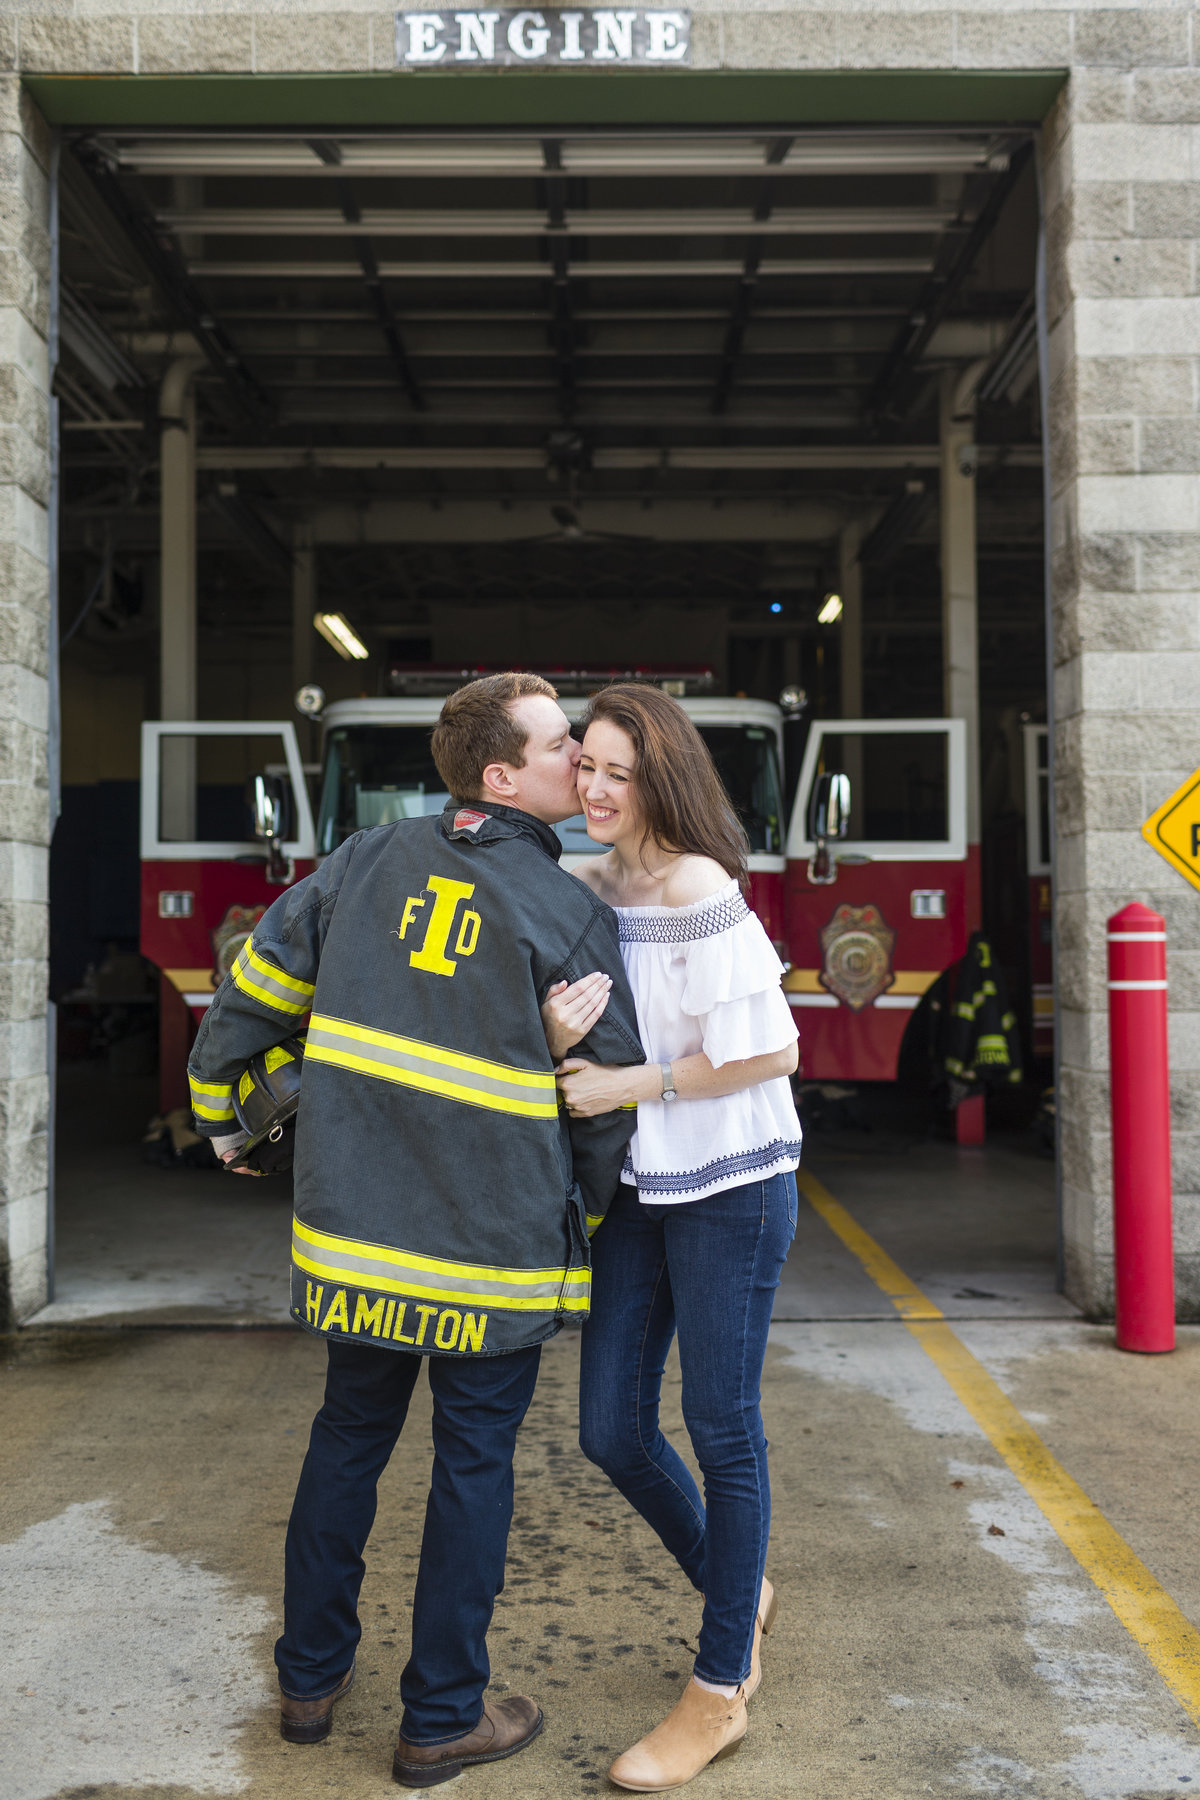 Fireman Engagement Session | Erika Brown Photography-5